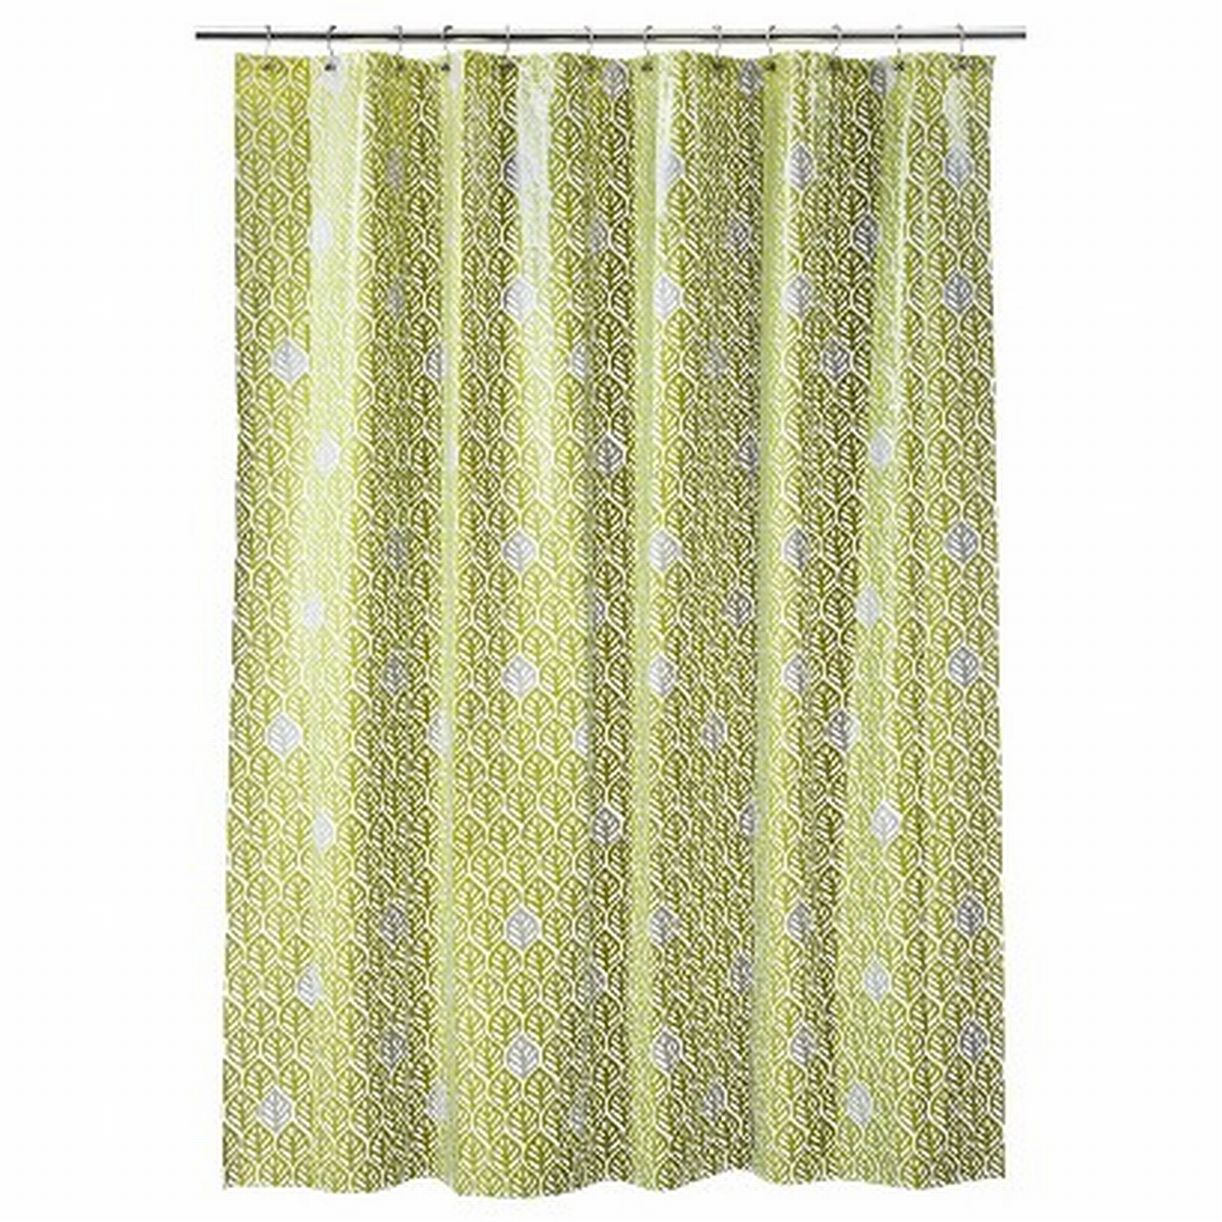 Room Essentials Green Skeleton Leaf PEVA Vinyl Shower Curtain Bath